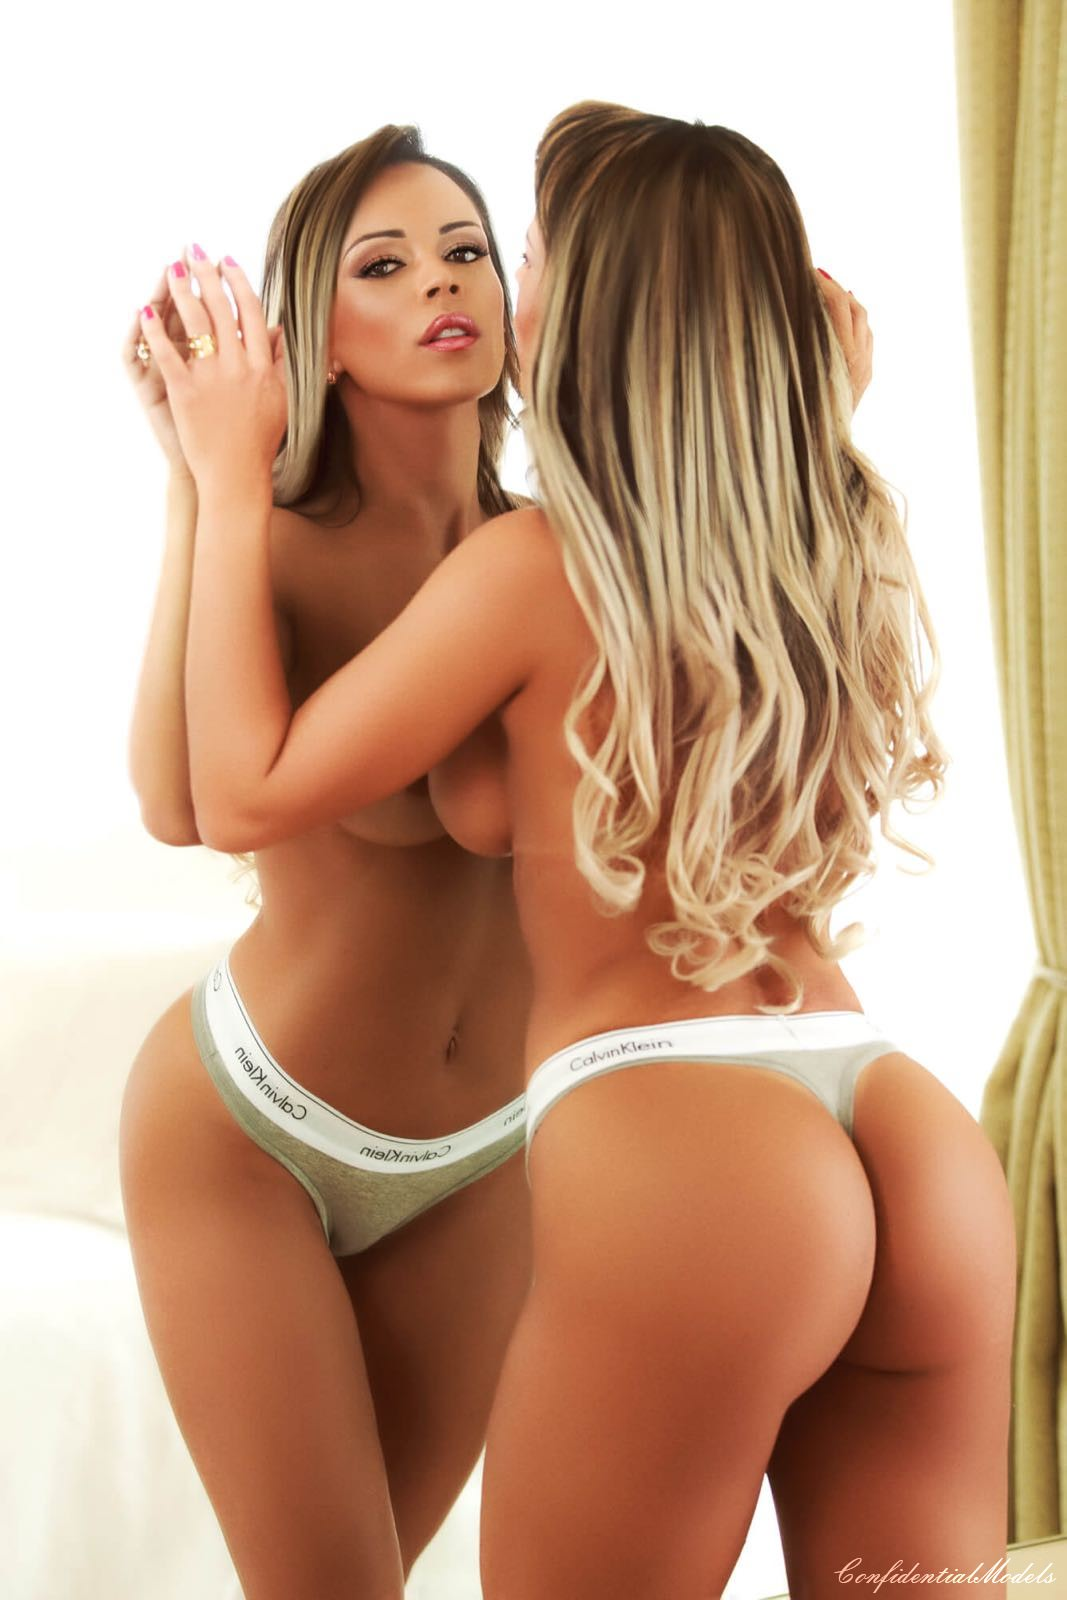 vanessa london escort